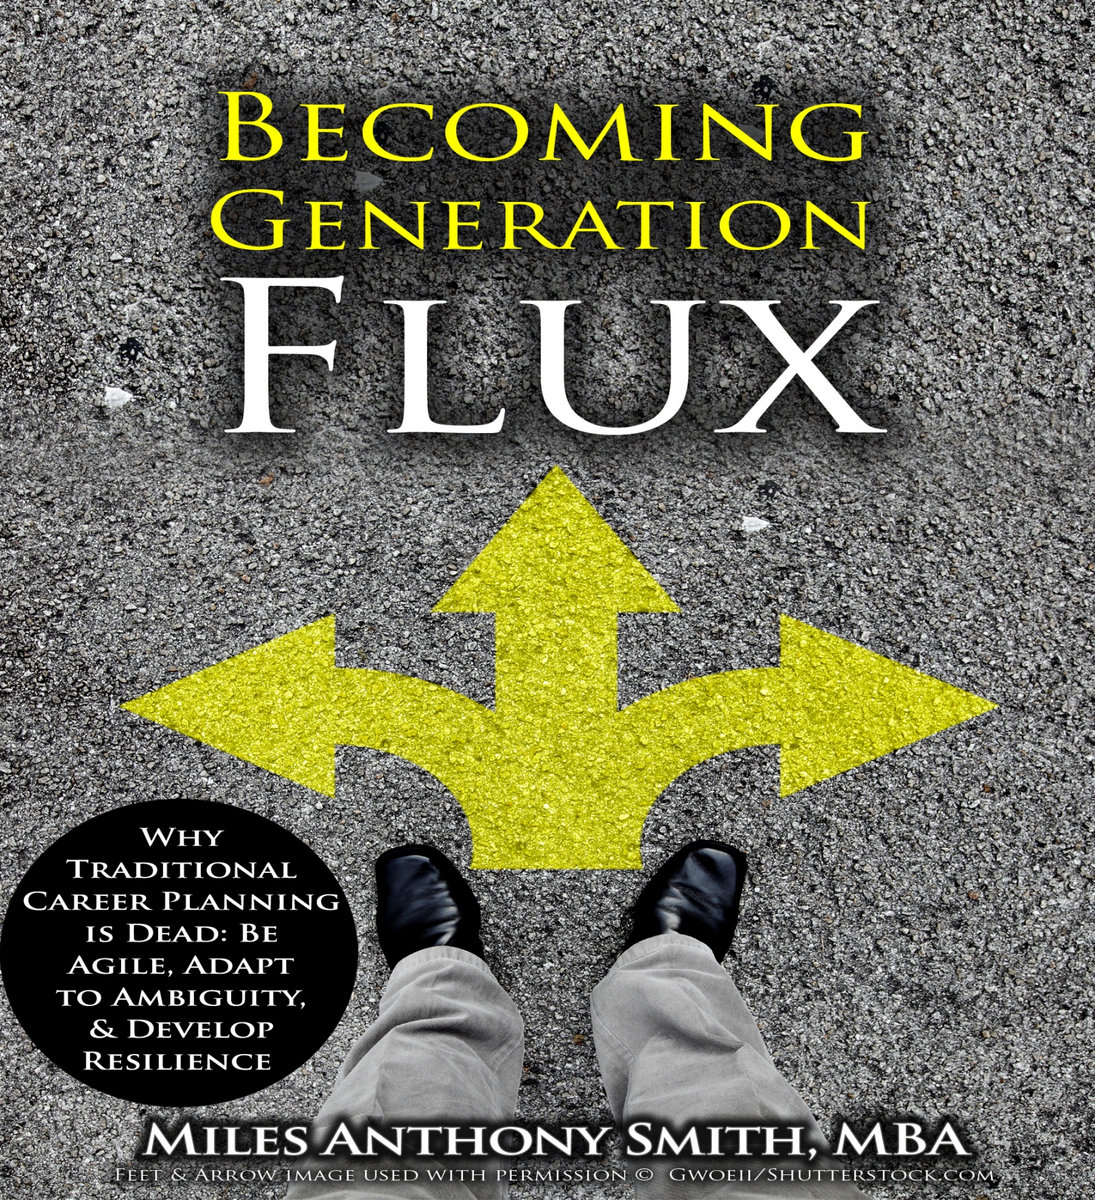 career transition audiobook sample becoming generation flux career transition audiobook sample becoming generation flux successful career planning means riding wave of change